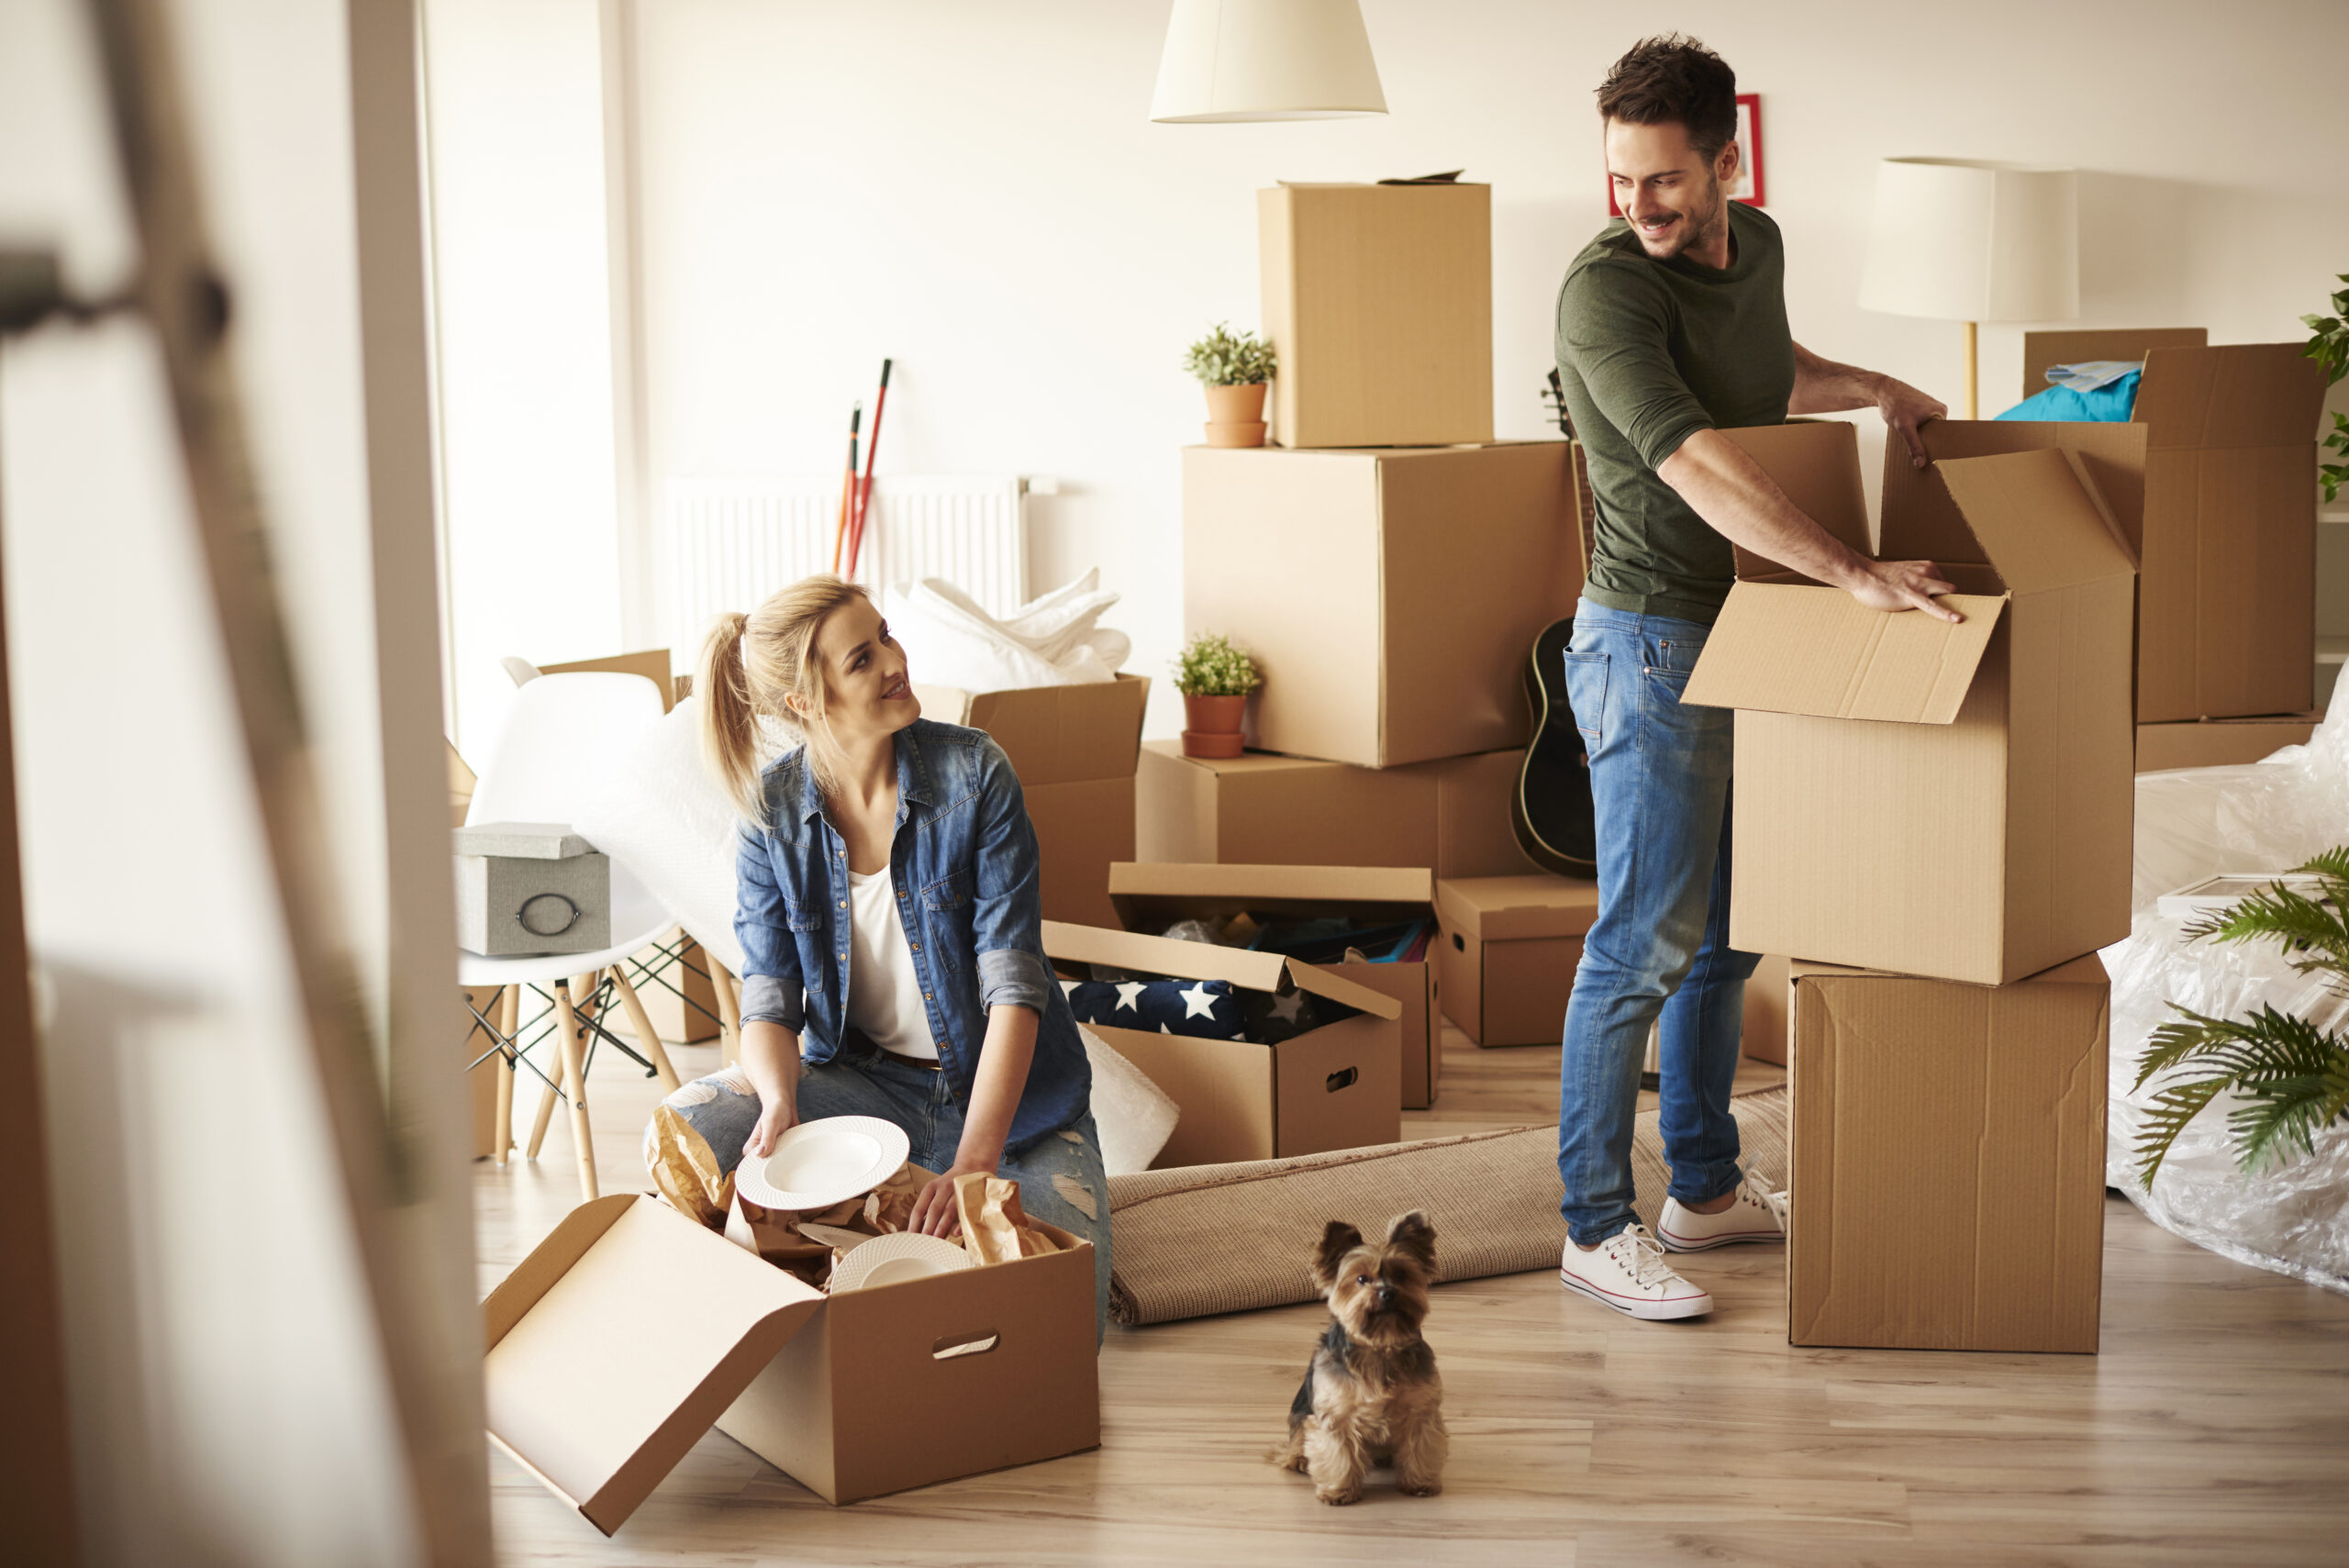 5 Things to Consider Before Moving in With Your SO